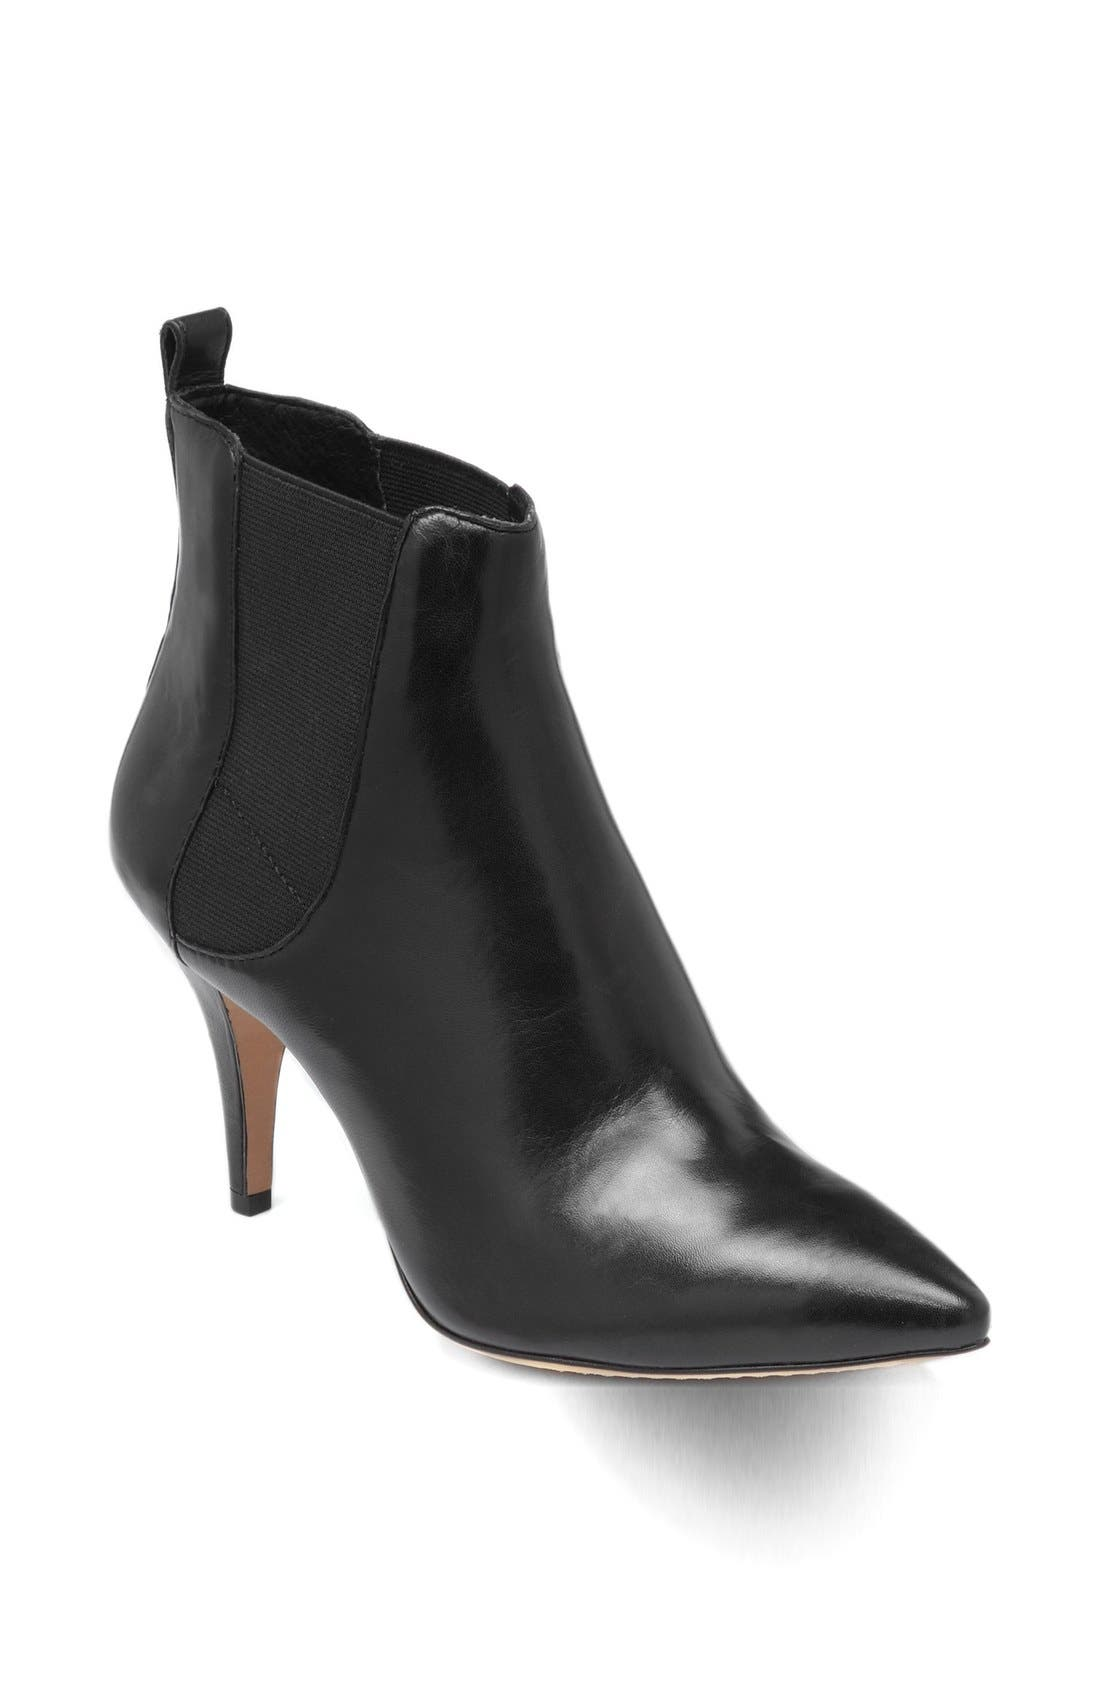 Main Image - Vince Camuto 'Onya' Bootie